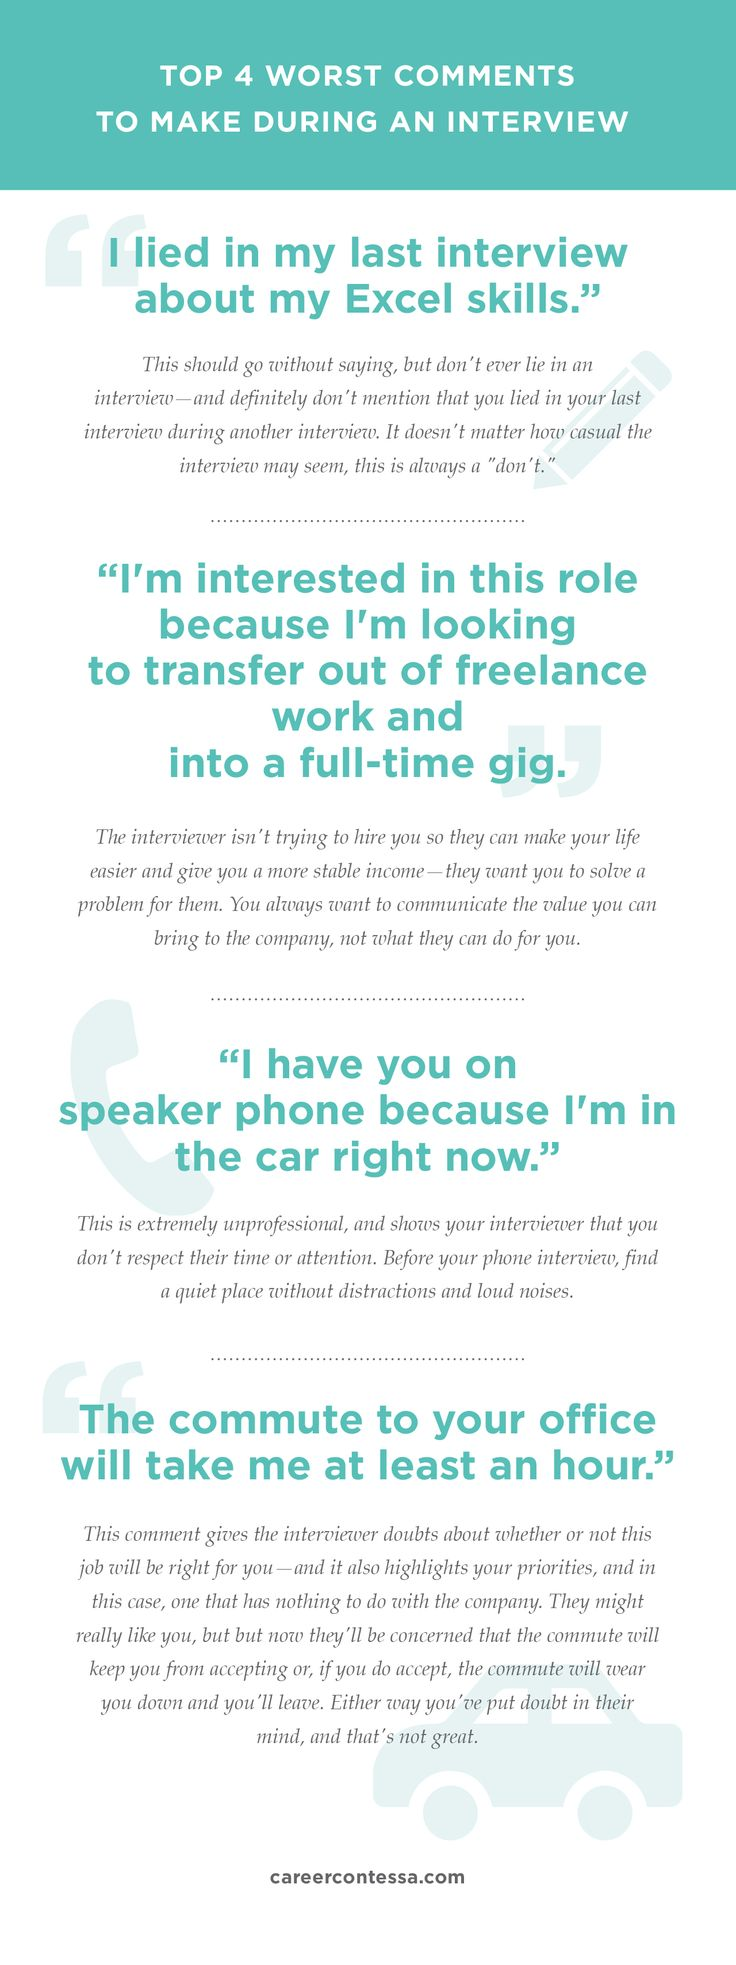 The 4 Worst Comments To Make During An Interview